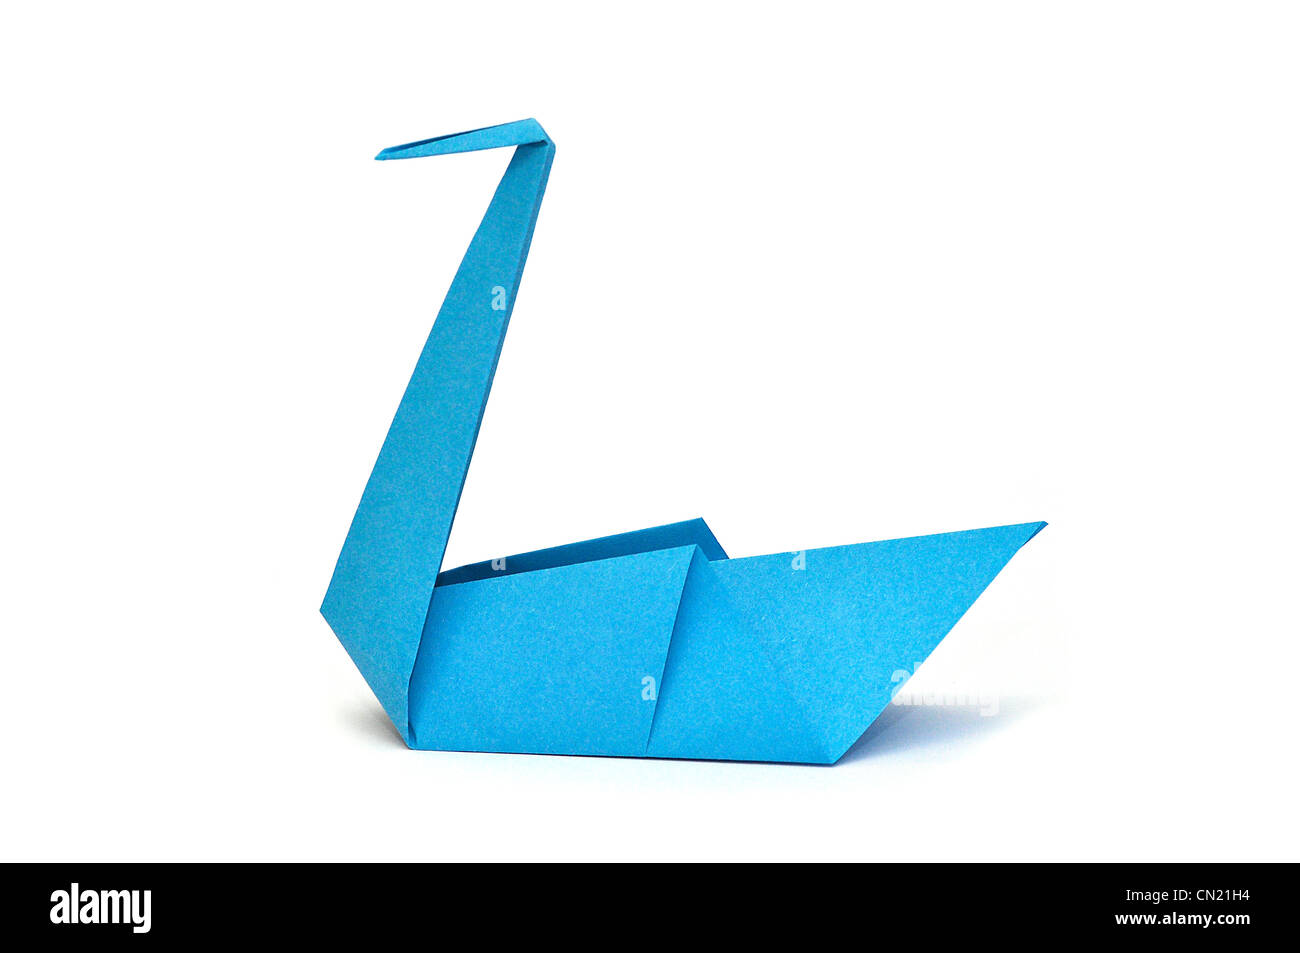 Origami Blue Paper Swan - Stock Image